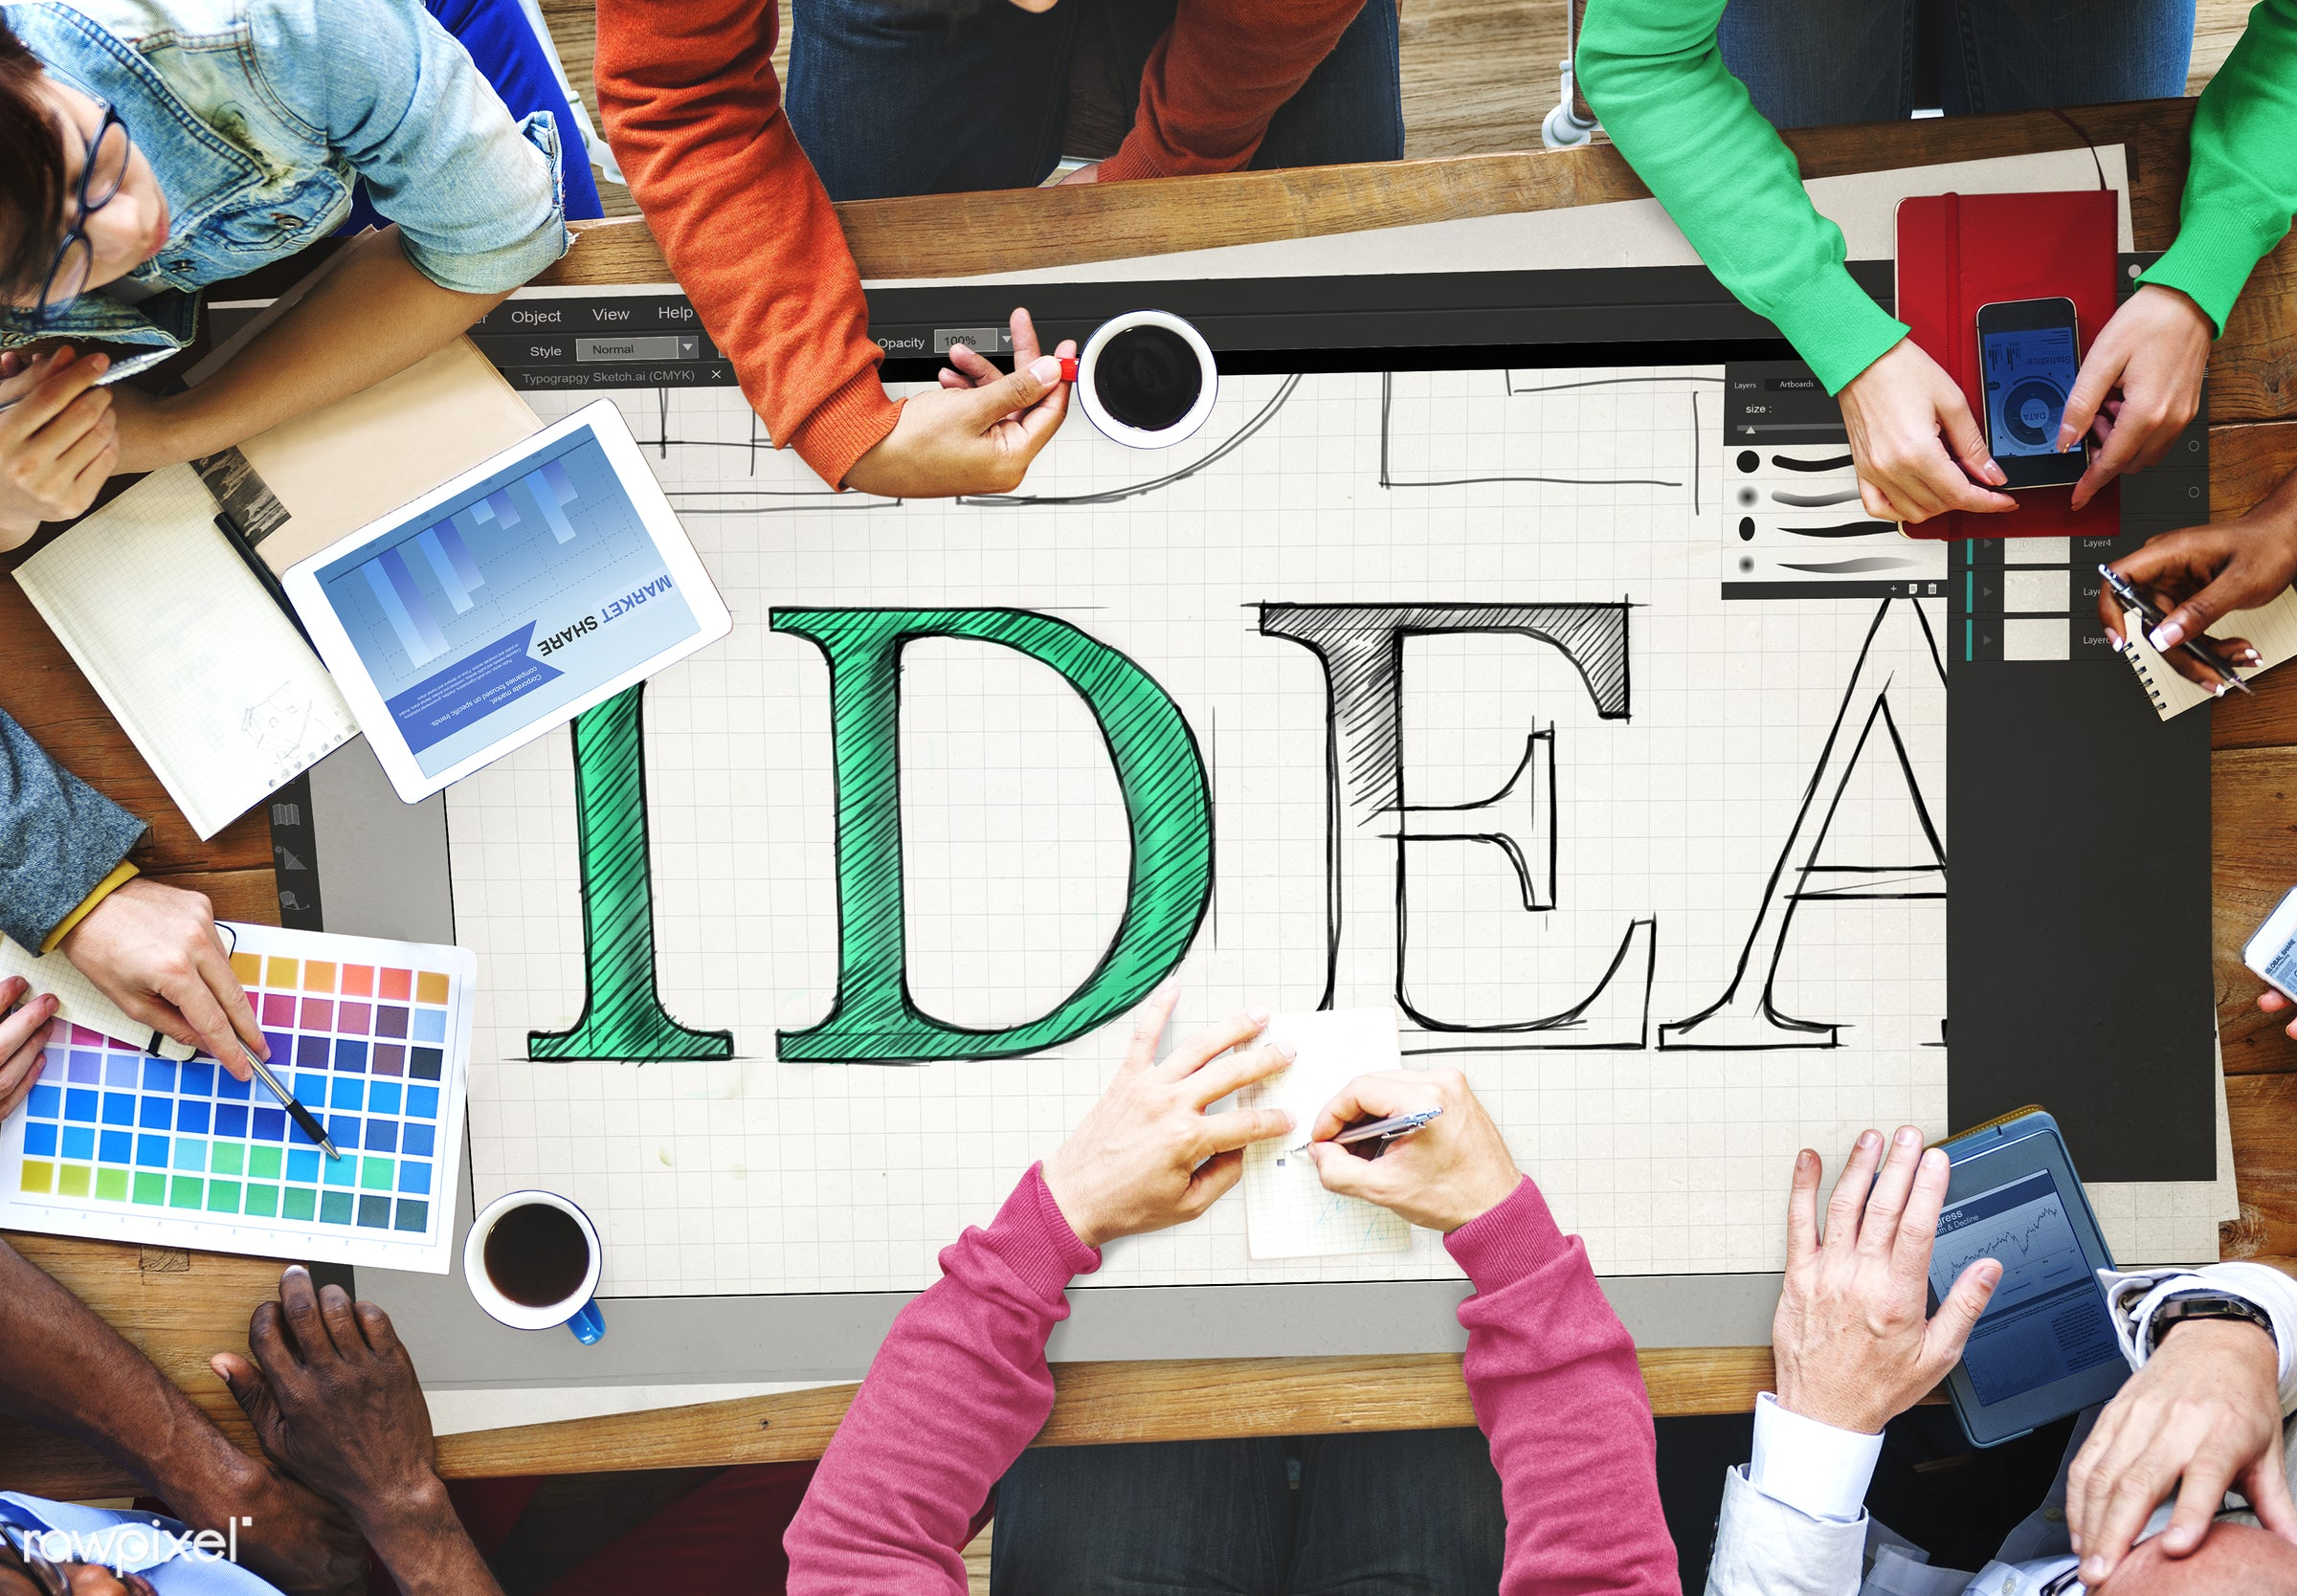 idea, discussion, small business, teamwork, sharing, casual, working, aerial view, ideas, diversity, creative, coffee,...